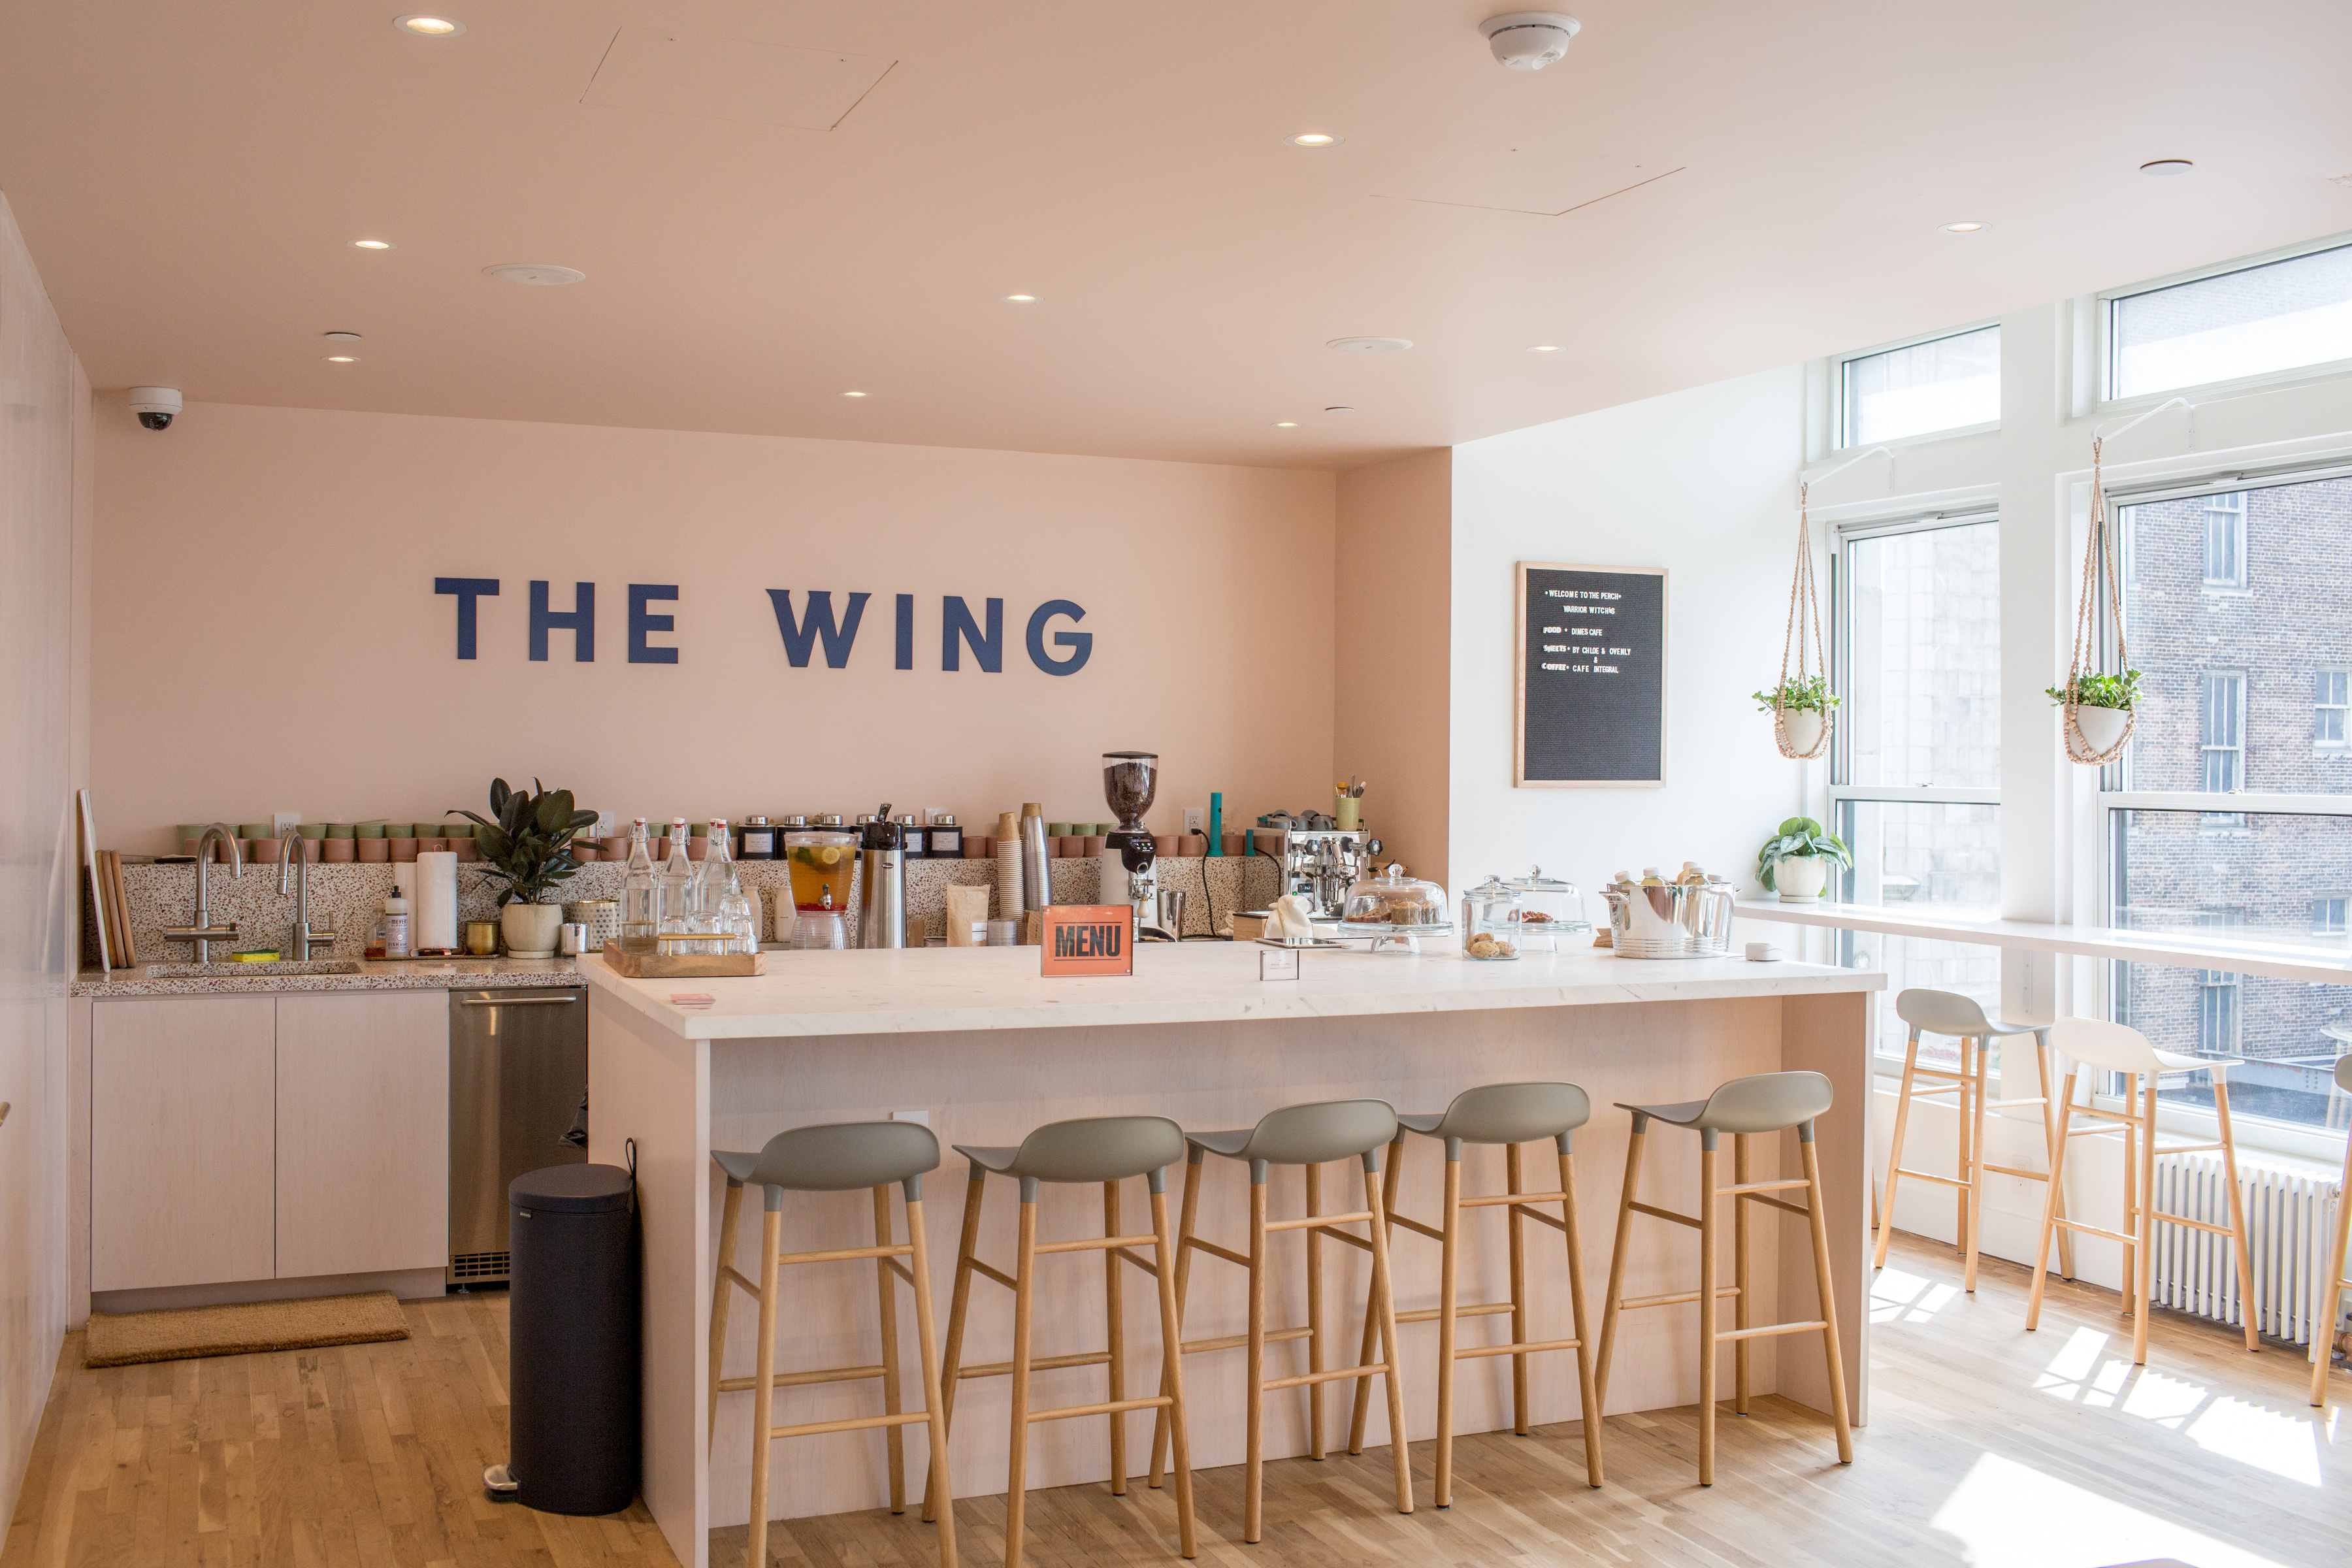 October 20th, 2016. Manhattan, NY. The cafe area. The Wing is a new co-working space for women only located at 45 East 20th street in Manhattan.